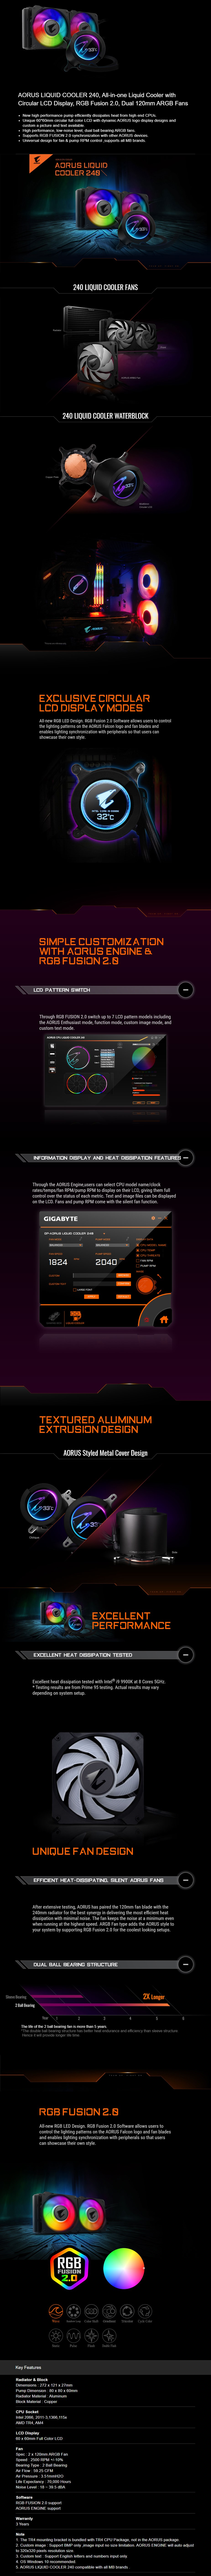 Gigabyte Aorus 240 ARGB 120mm LCD Display All-in-One Liquid CPU Cooler - Overview 1